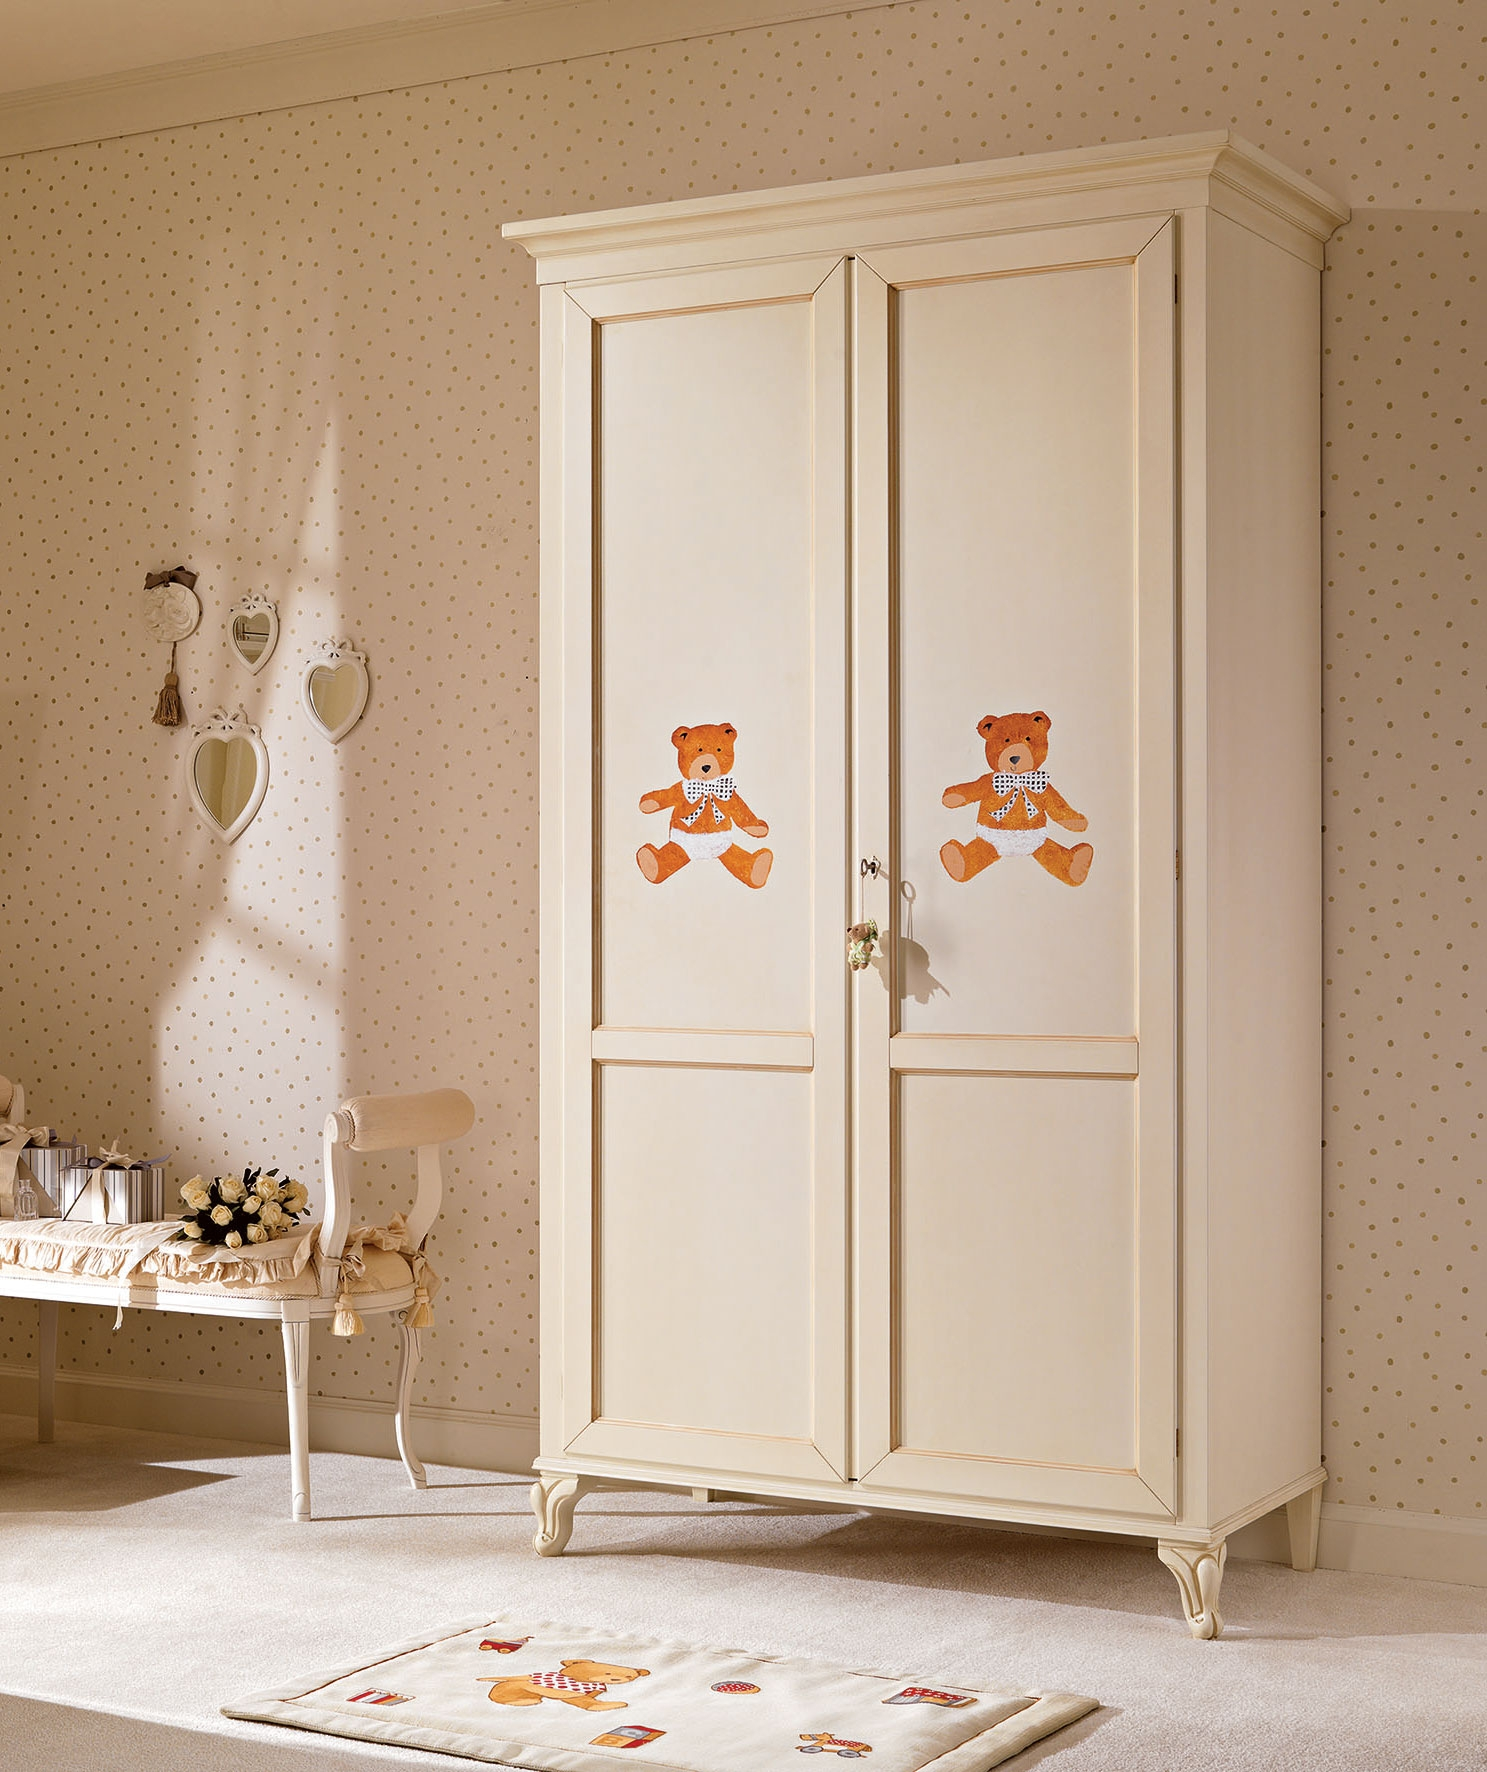 armoire penderie 2 portes pour la chambre enfant. Black Bedroom Furniture Sets. Home Design Ideas